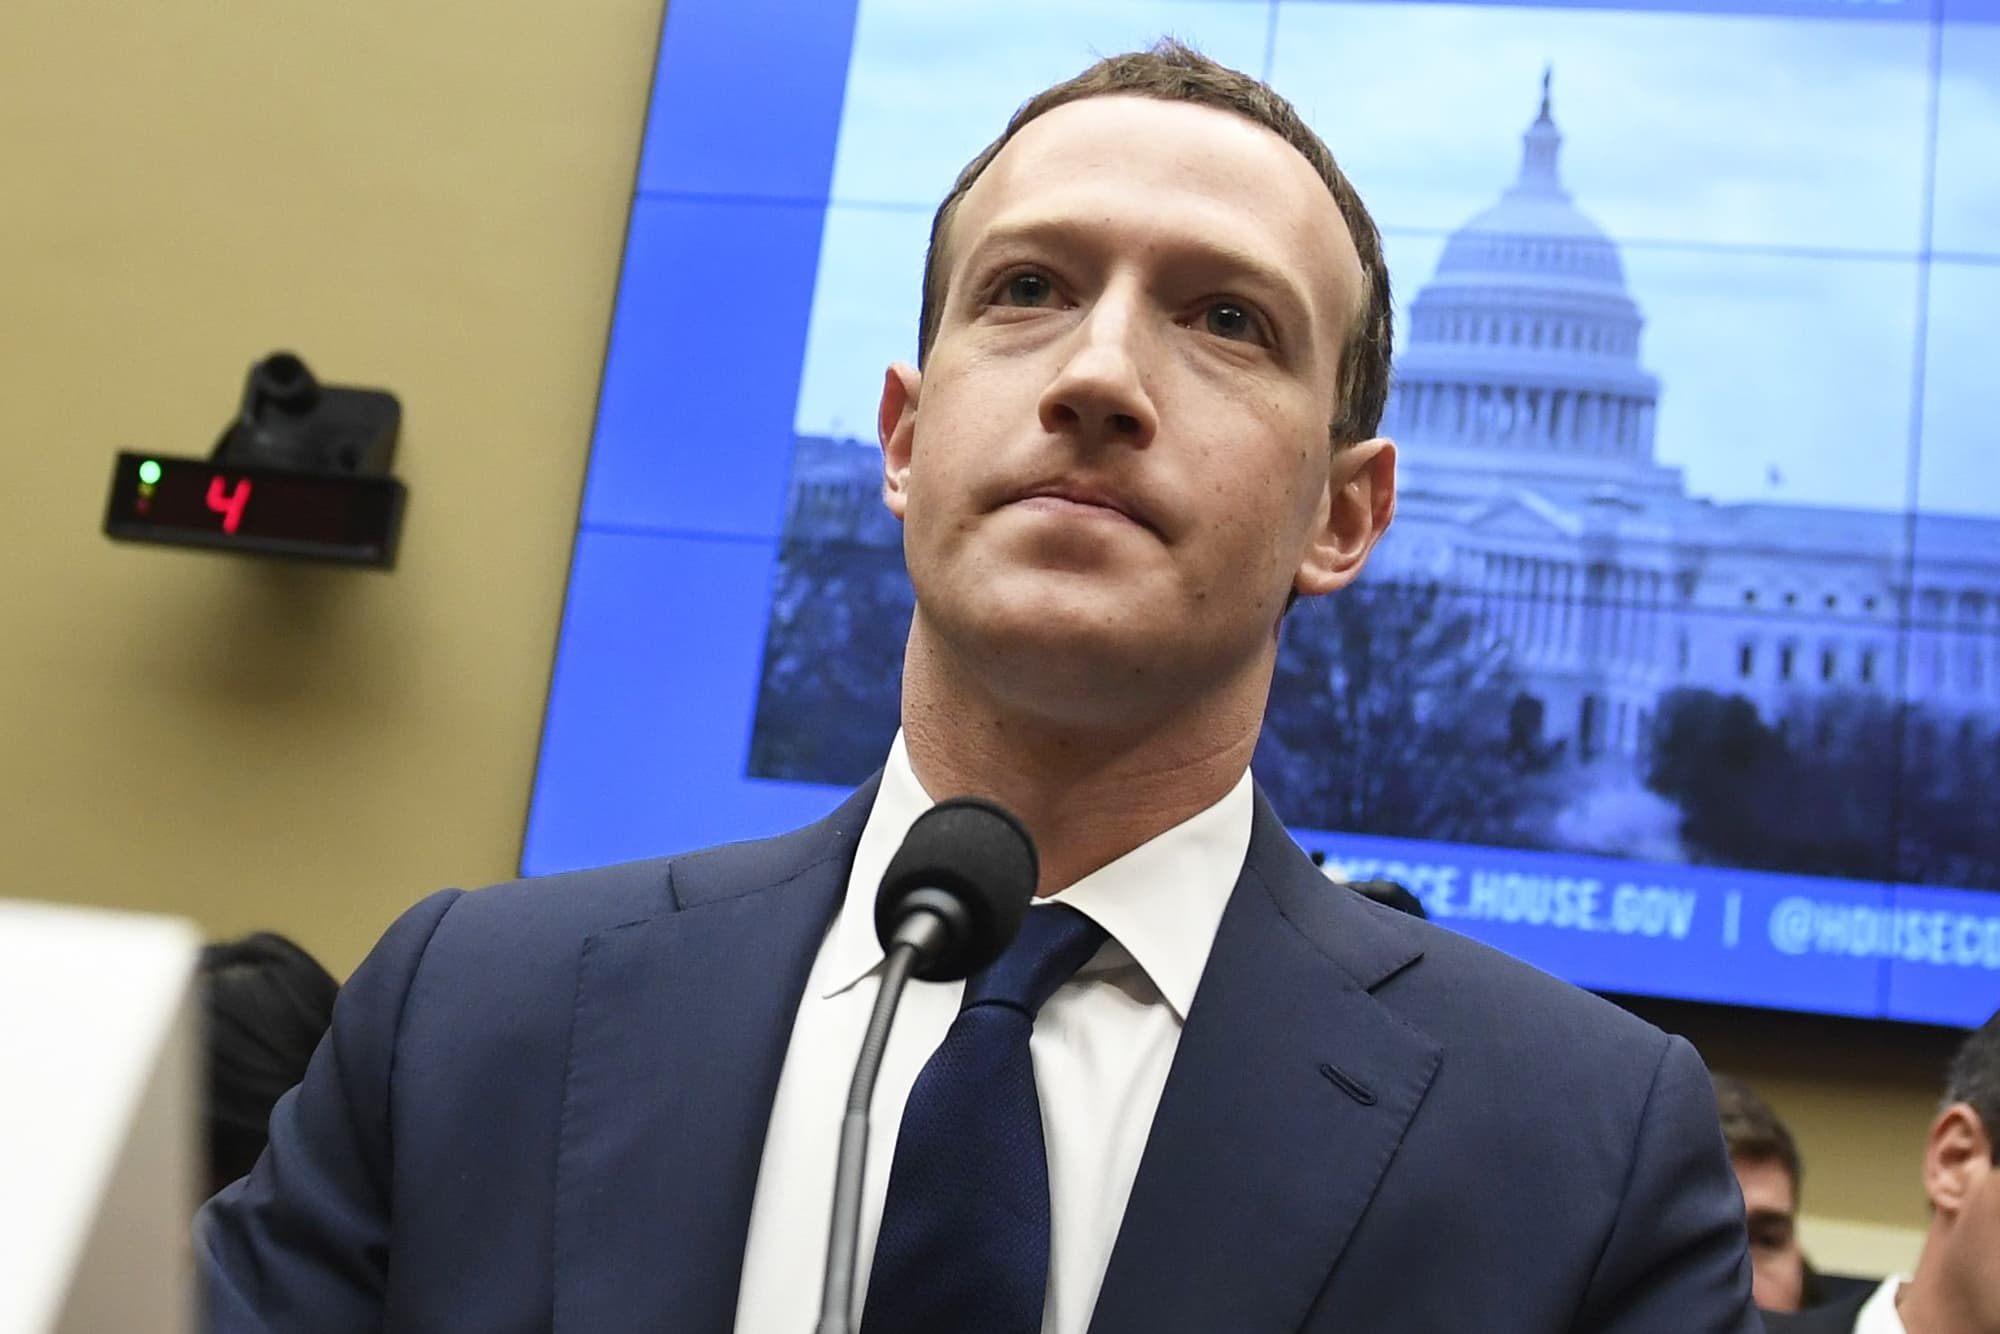 One of Zuckerberg's top critics in Congress says he told him to sell Instagram and WhatsApp